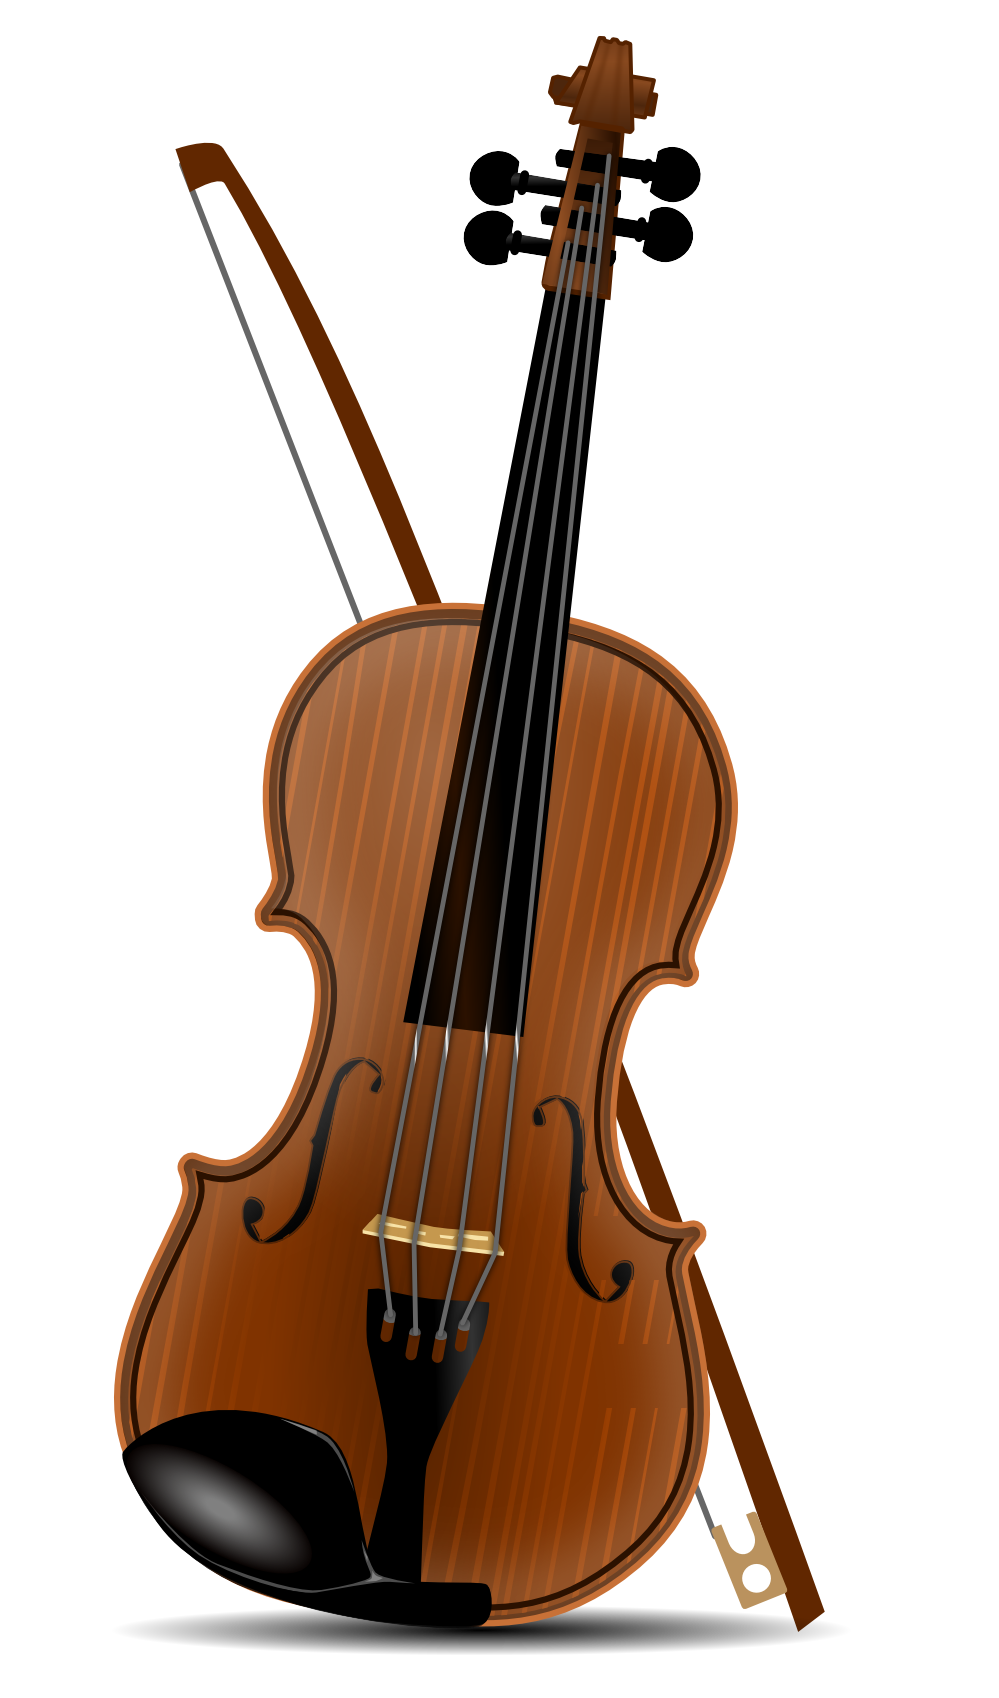 Applause clipart instrument. Download violin png hq